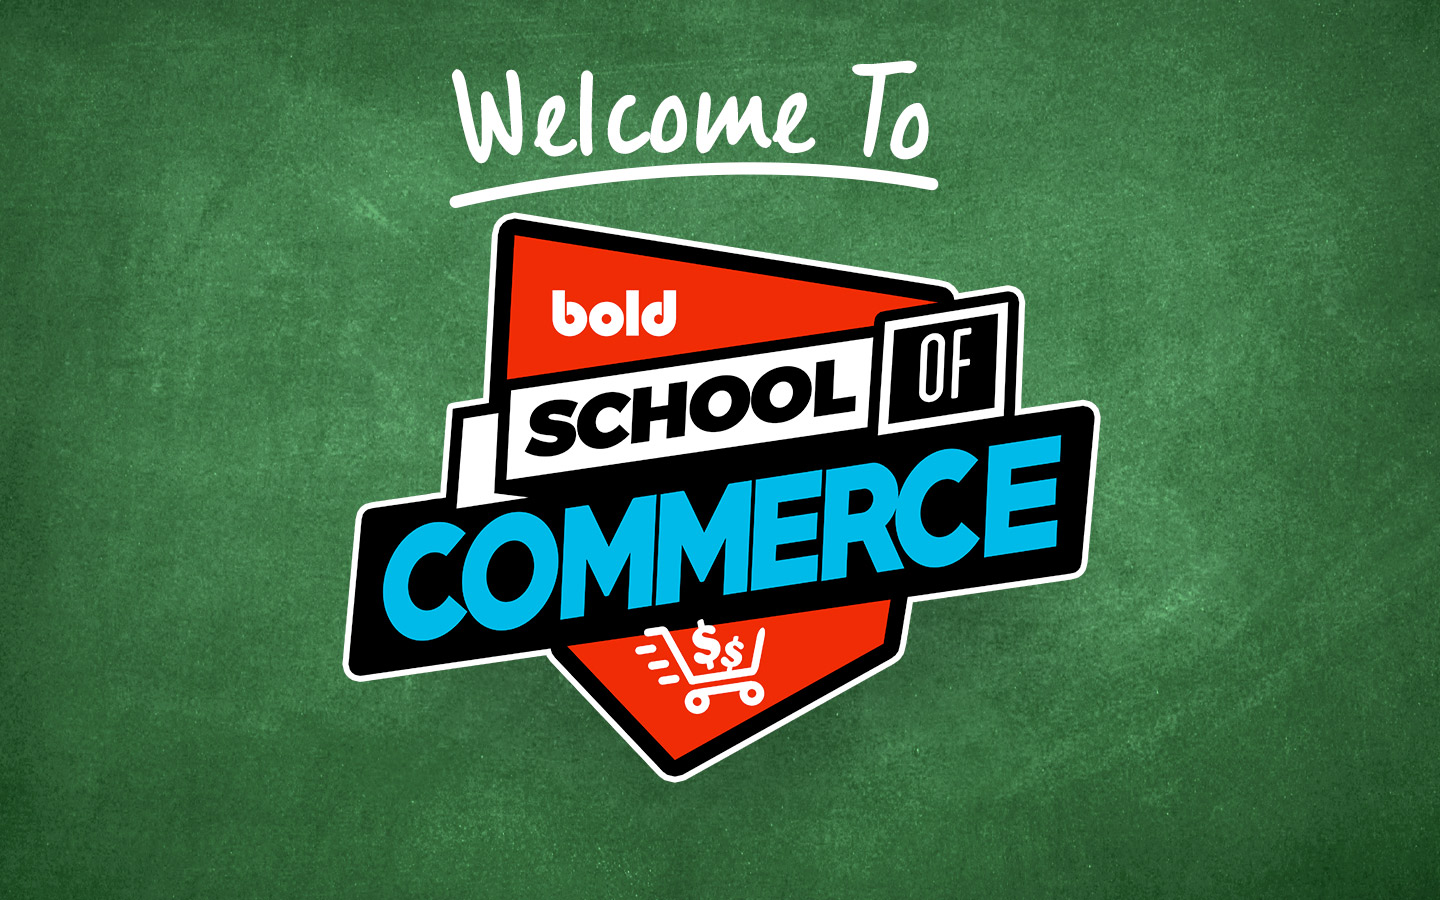 First School of Commerce lesson